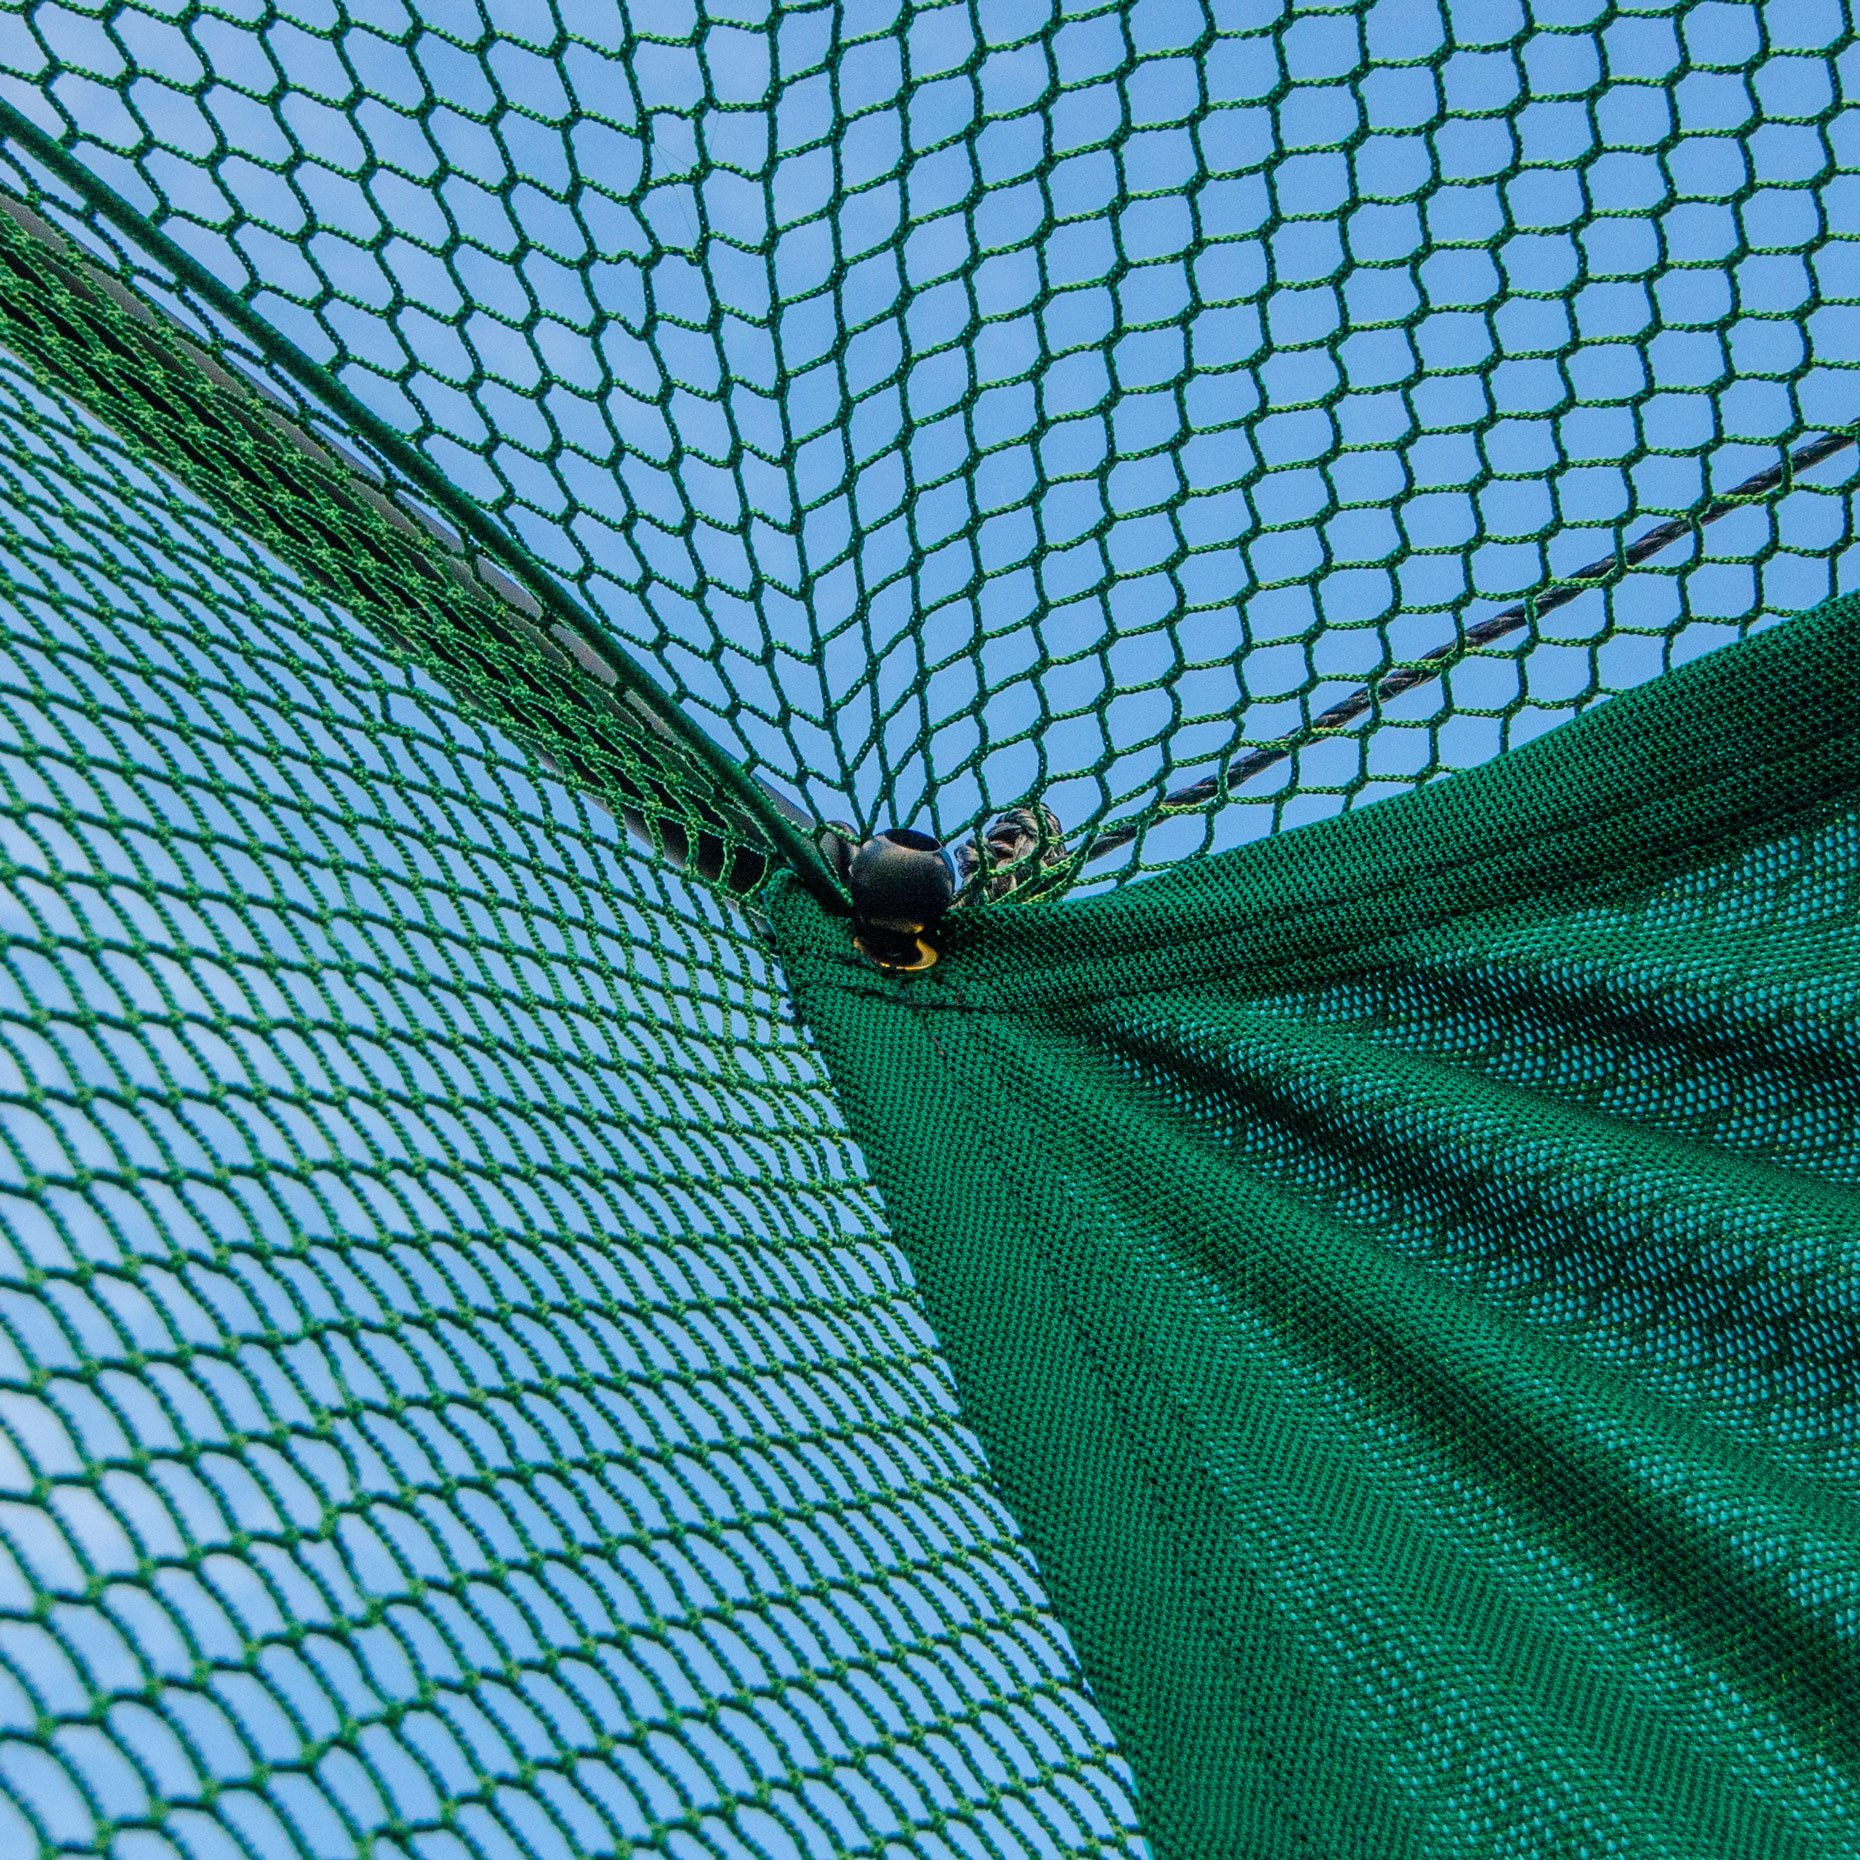 Replacement 10ft X 10ft Archery Grade Golf Impact Panel Netting (Green) – Super Strong Nets Guaranteed To Protect Your Golf Practice Cage From Damage [Net World Sports] by Net World Sports (Image #3)